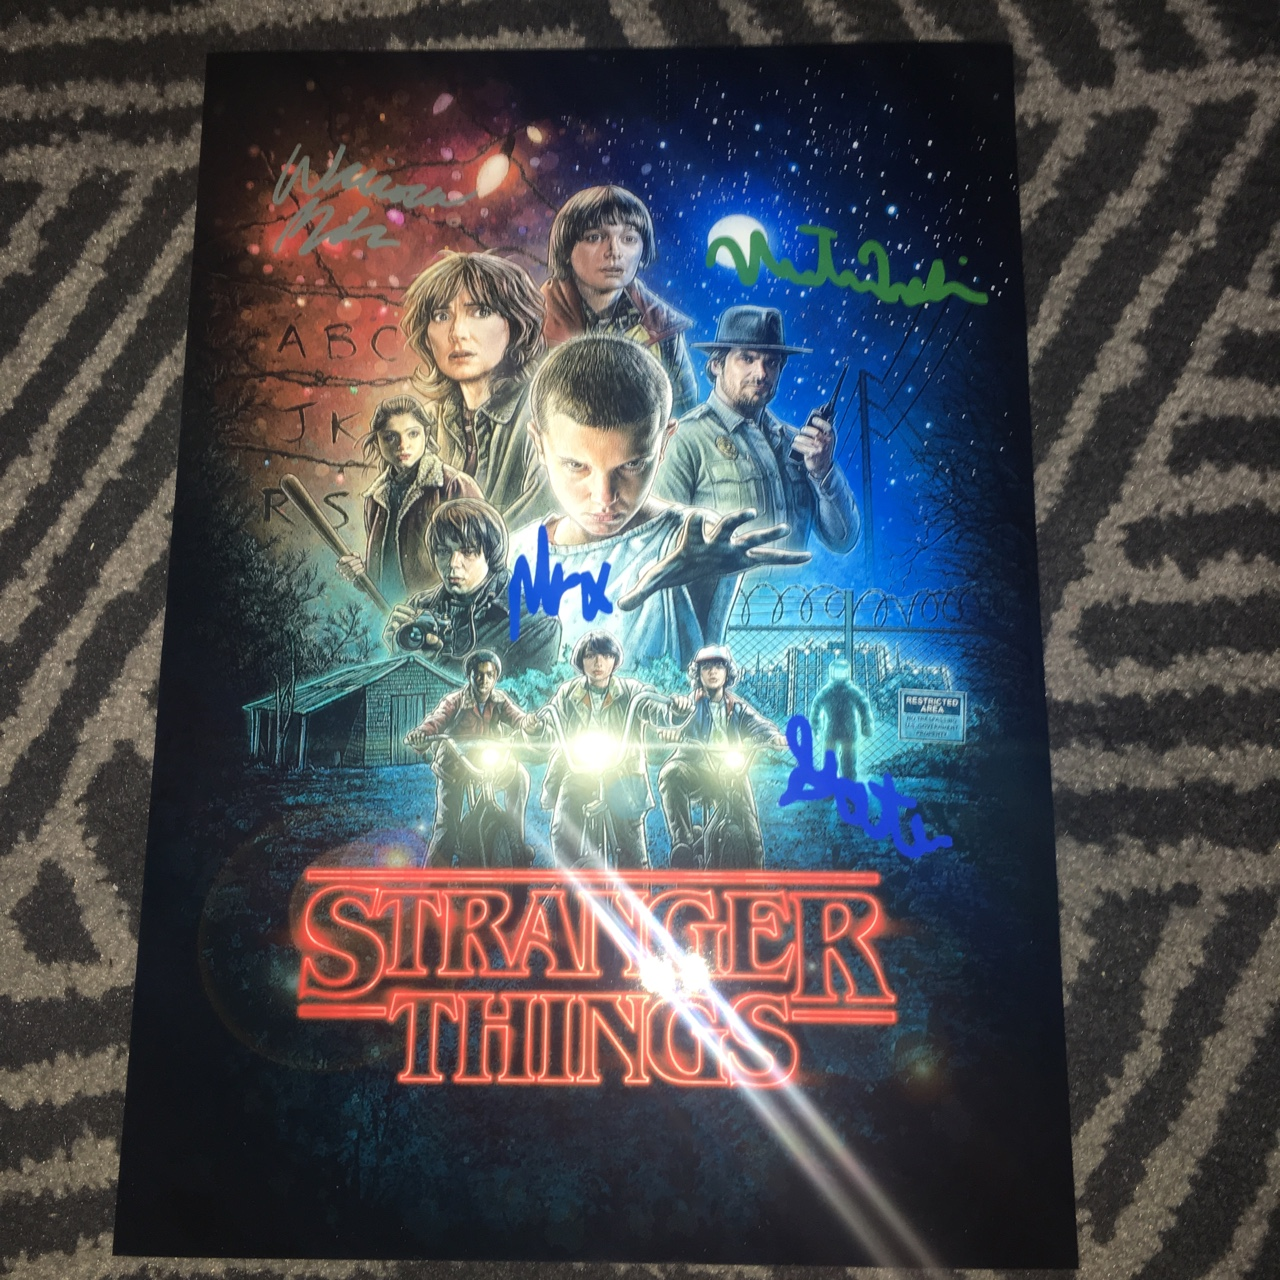 stranger things signed poster signed by 4x of the